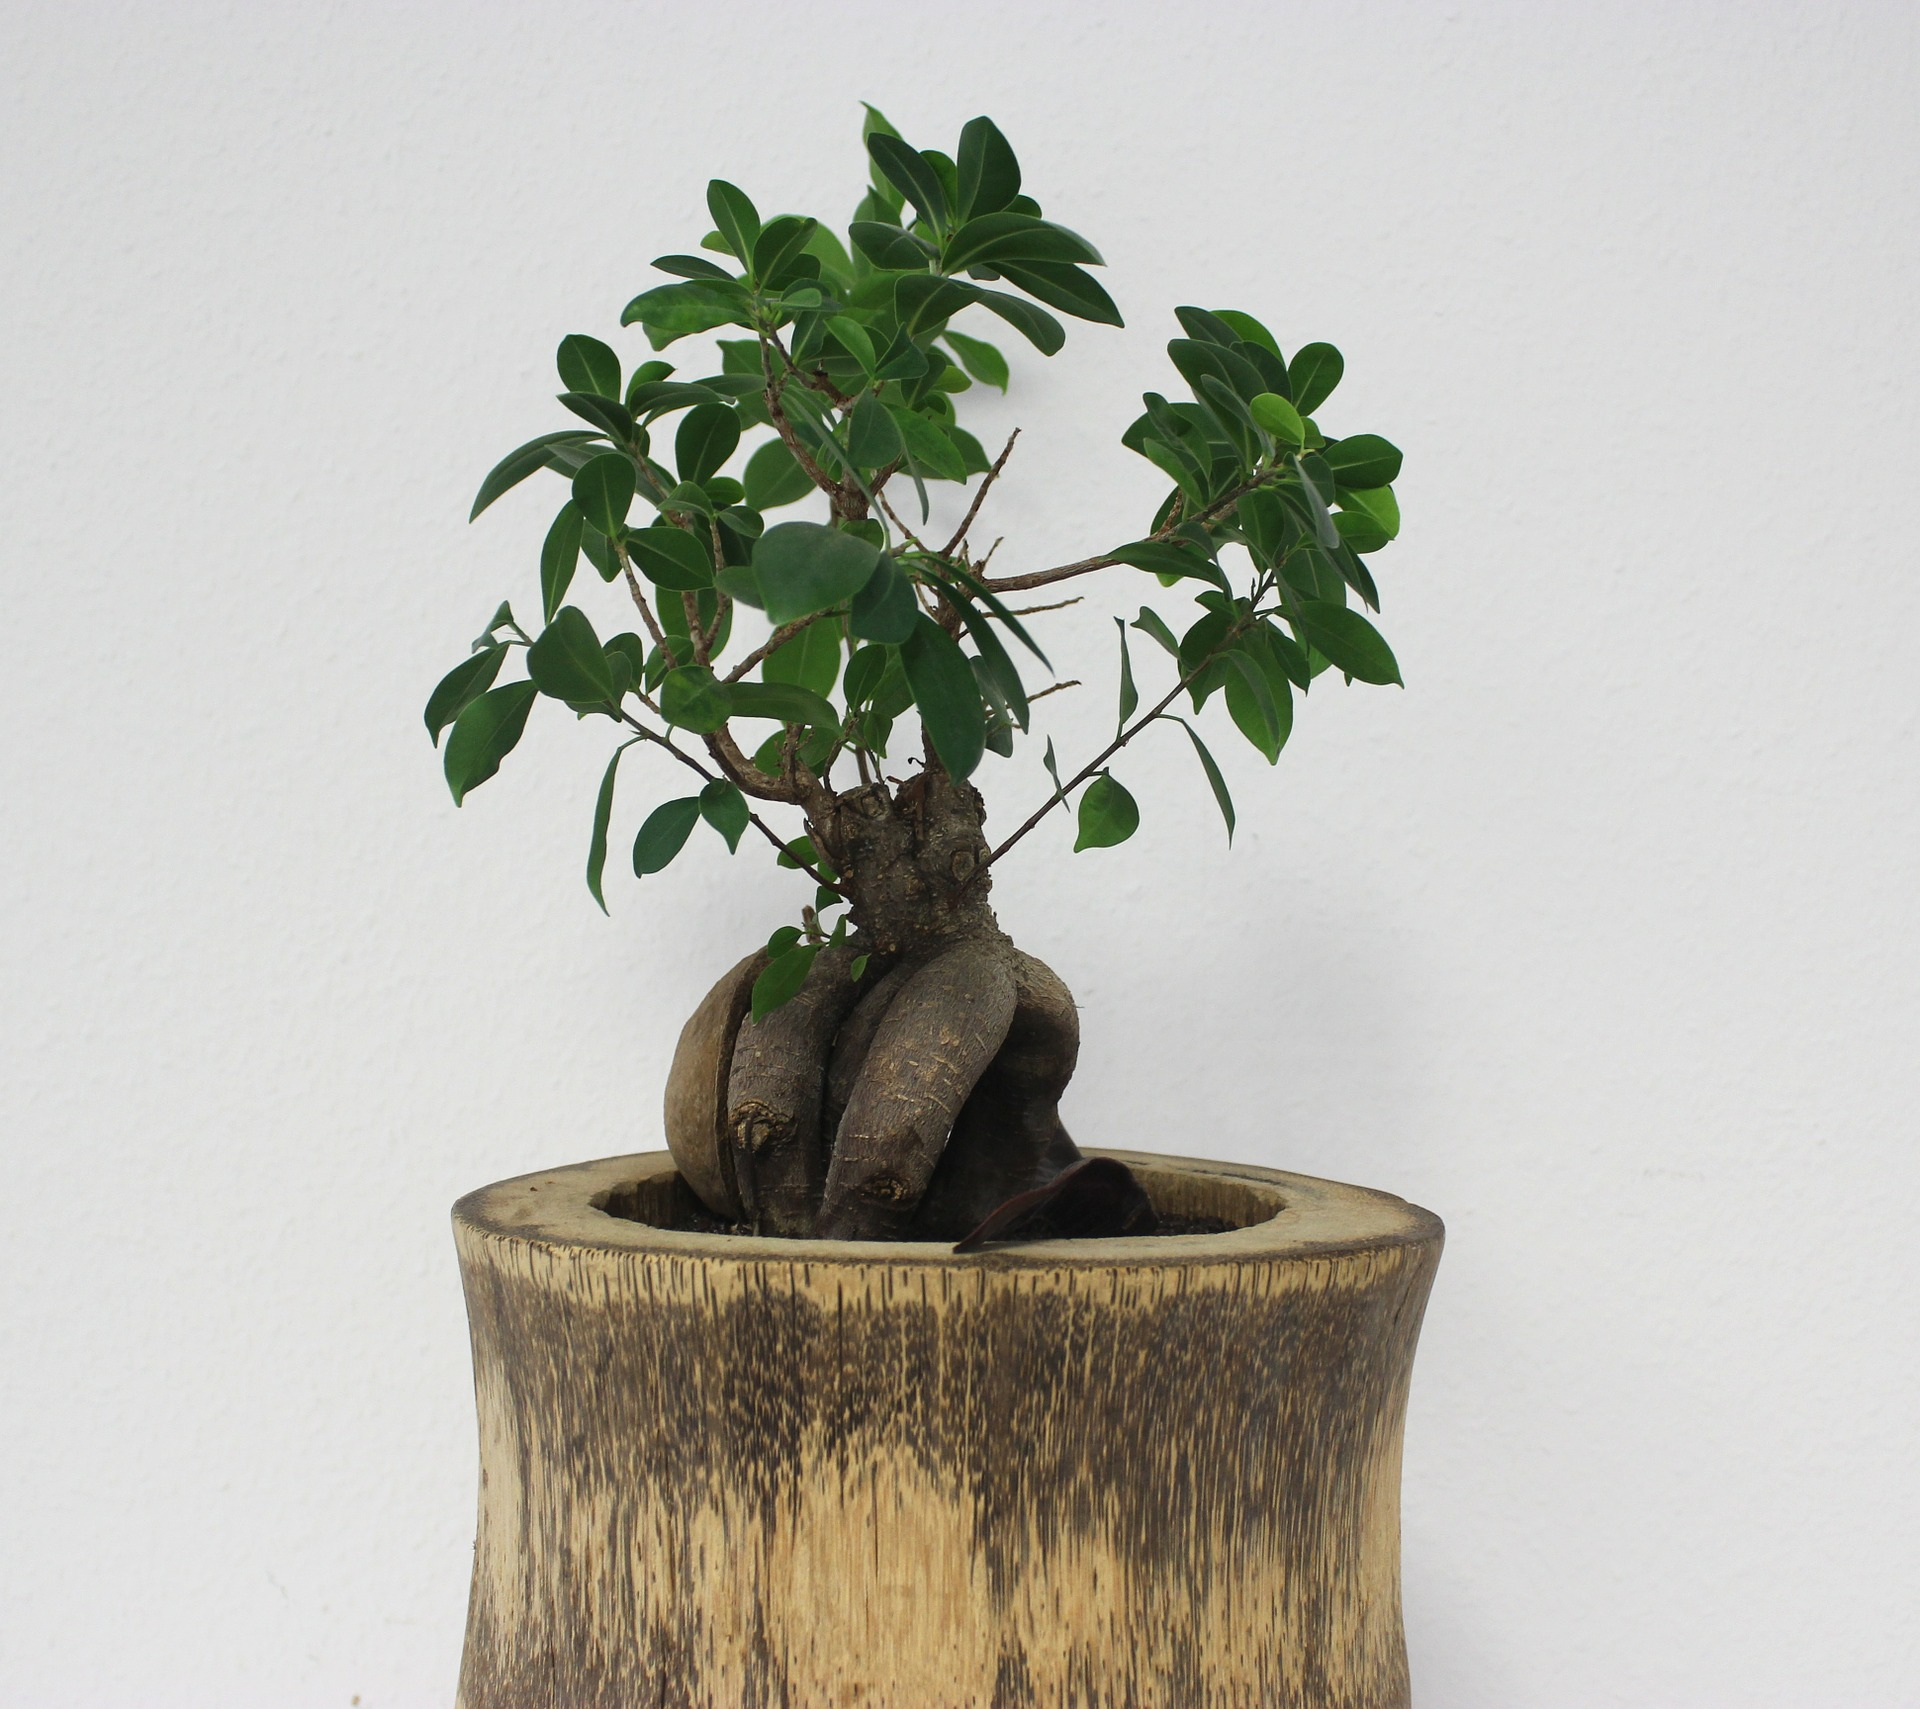 Home office feng shui decor live plants out of the office - Bonsai zimmerpflanze ...